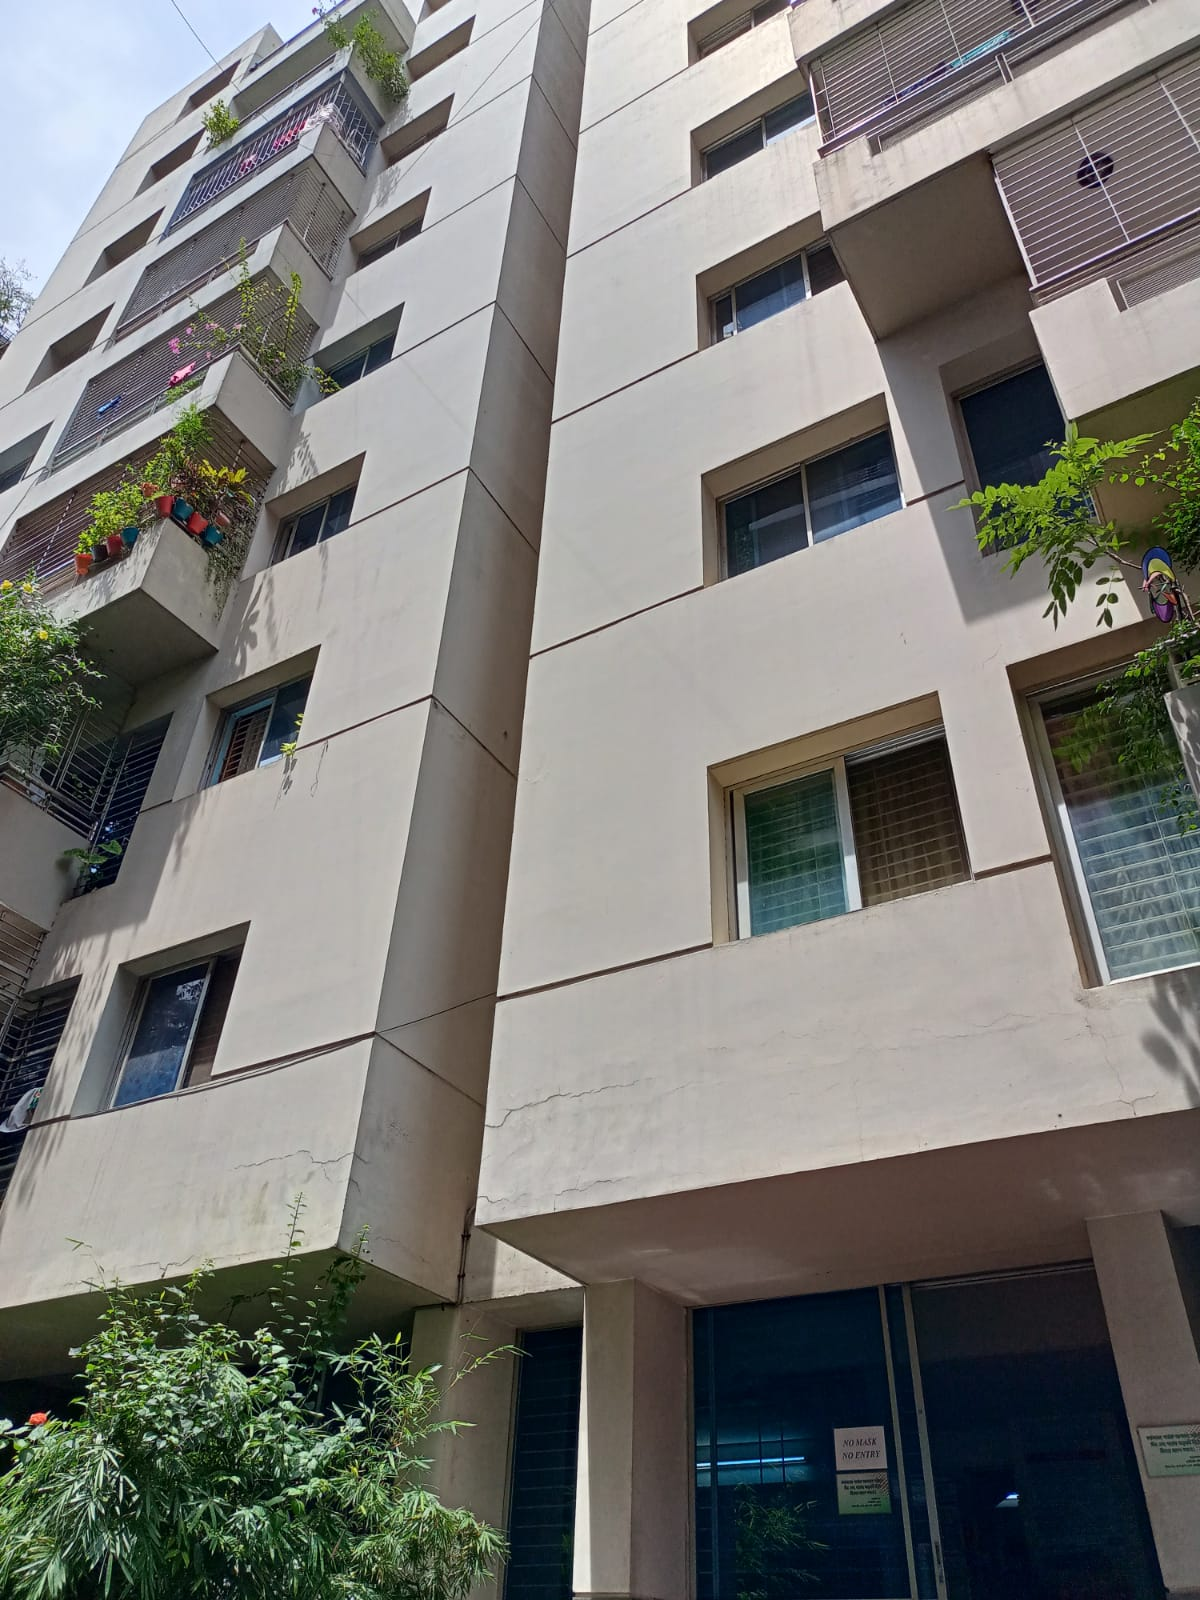 1669-sft-apartment-for-sale-in-green-road-8th-floor-637757